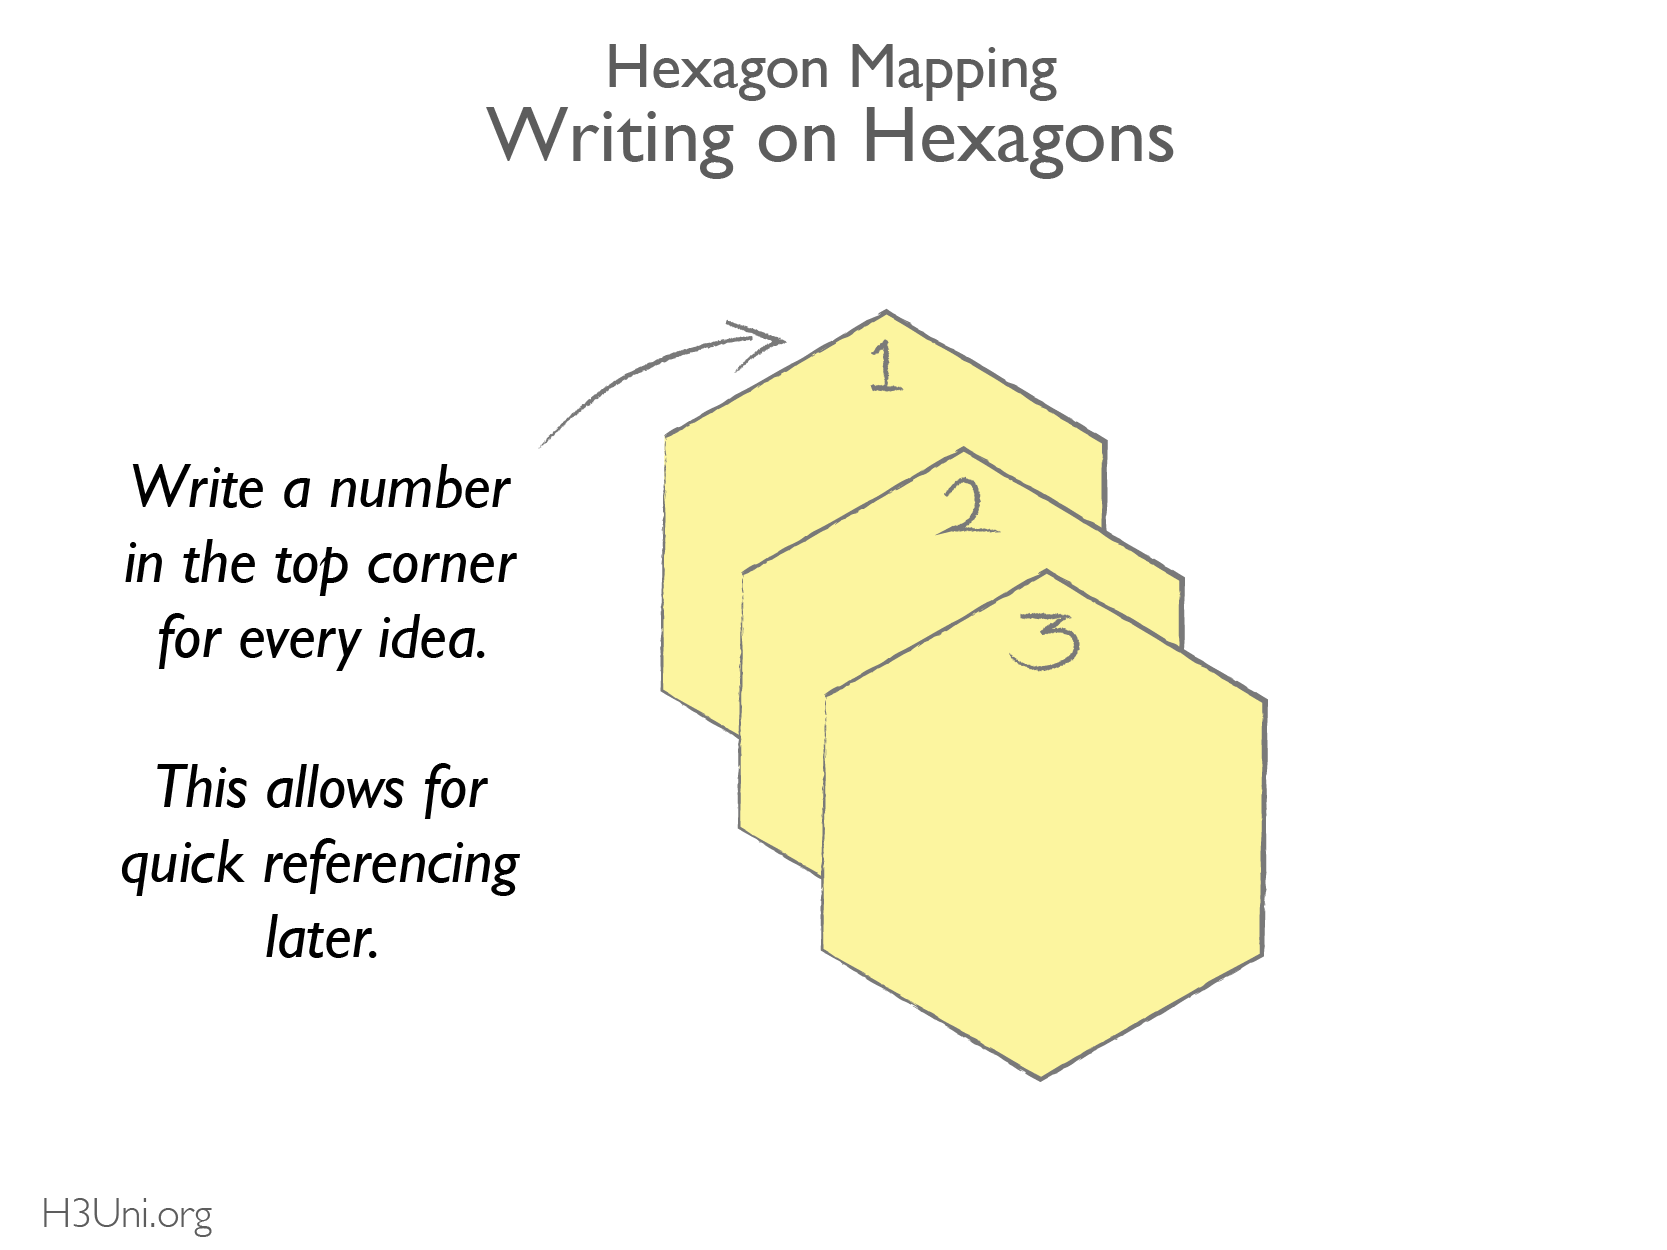 Writing on hexagons